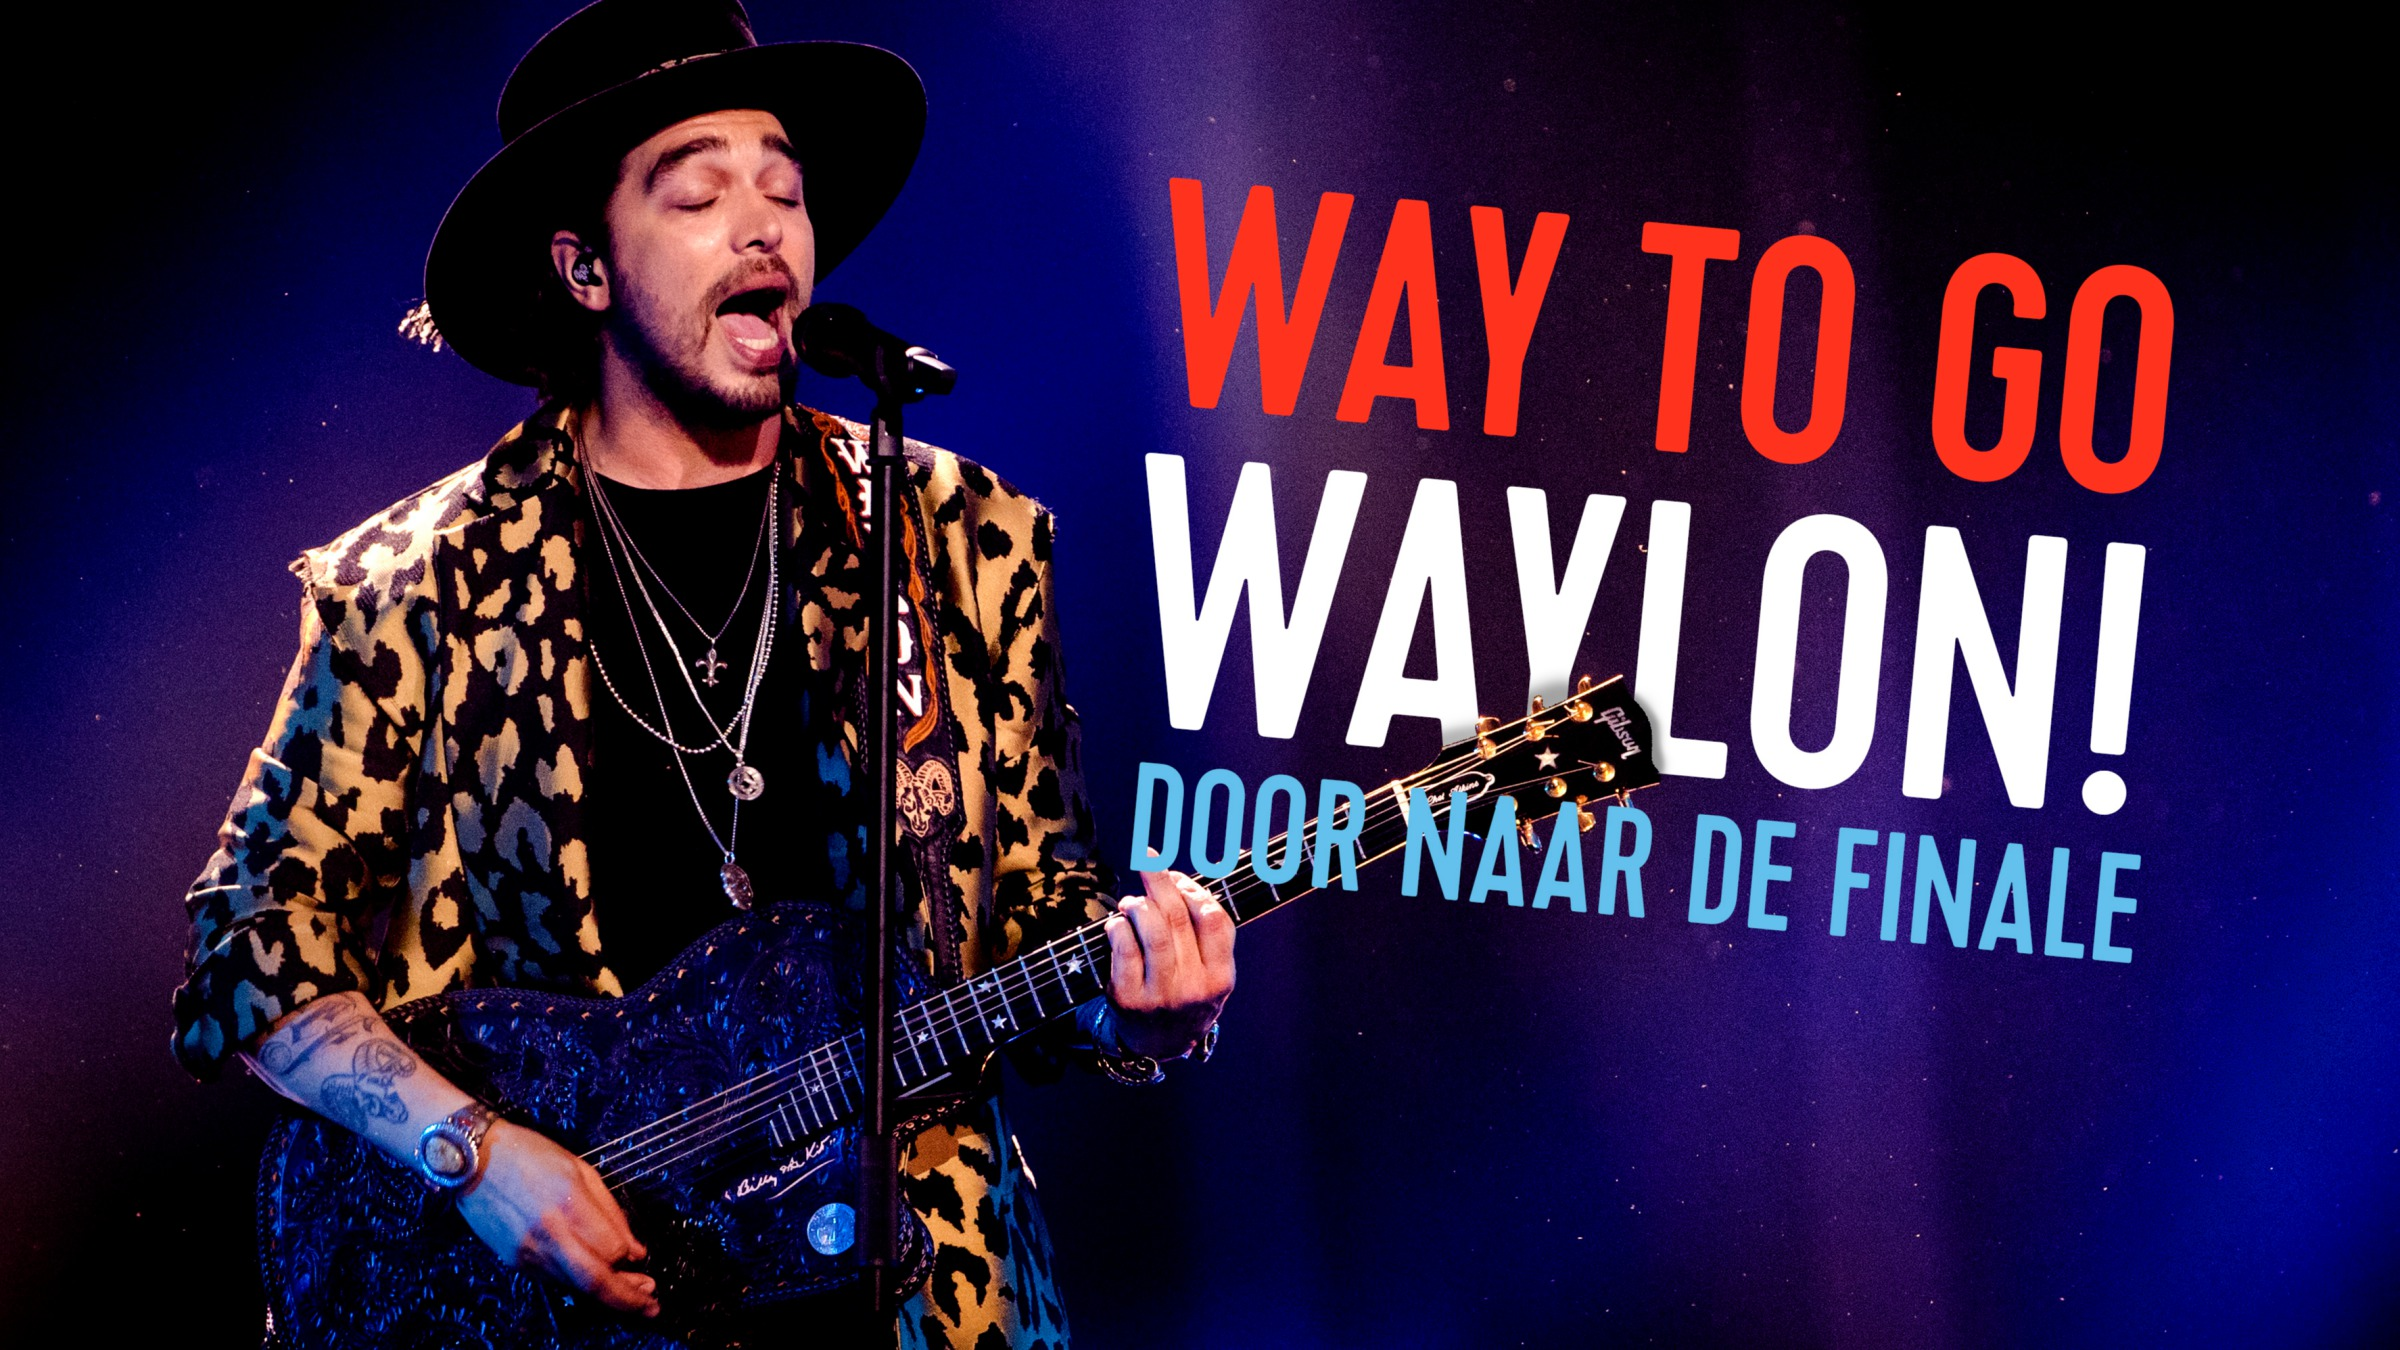 Fb waylon door tbumb